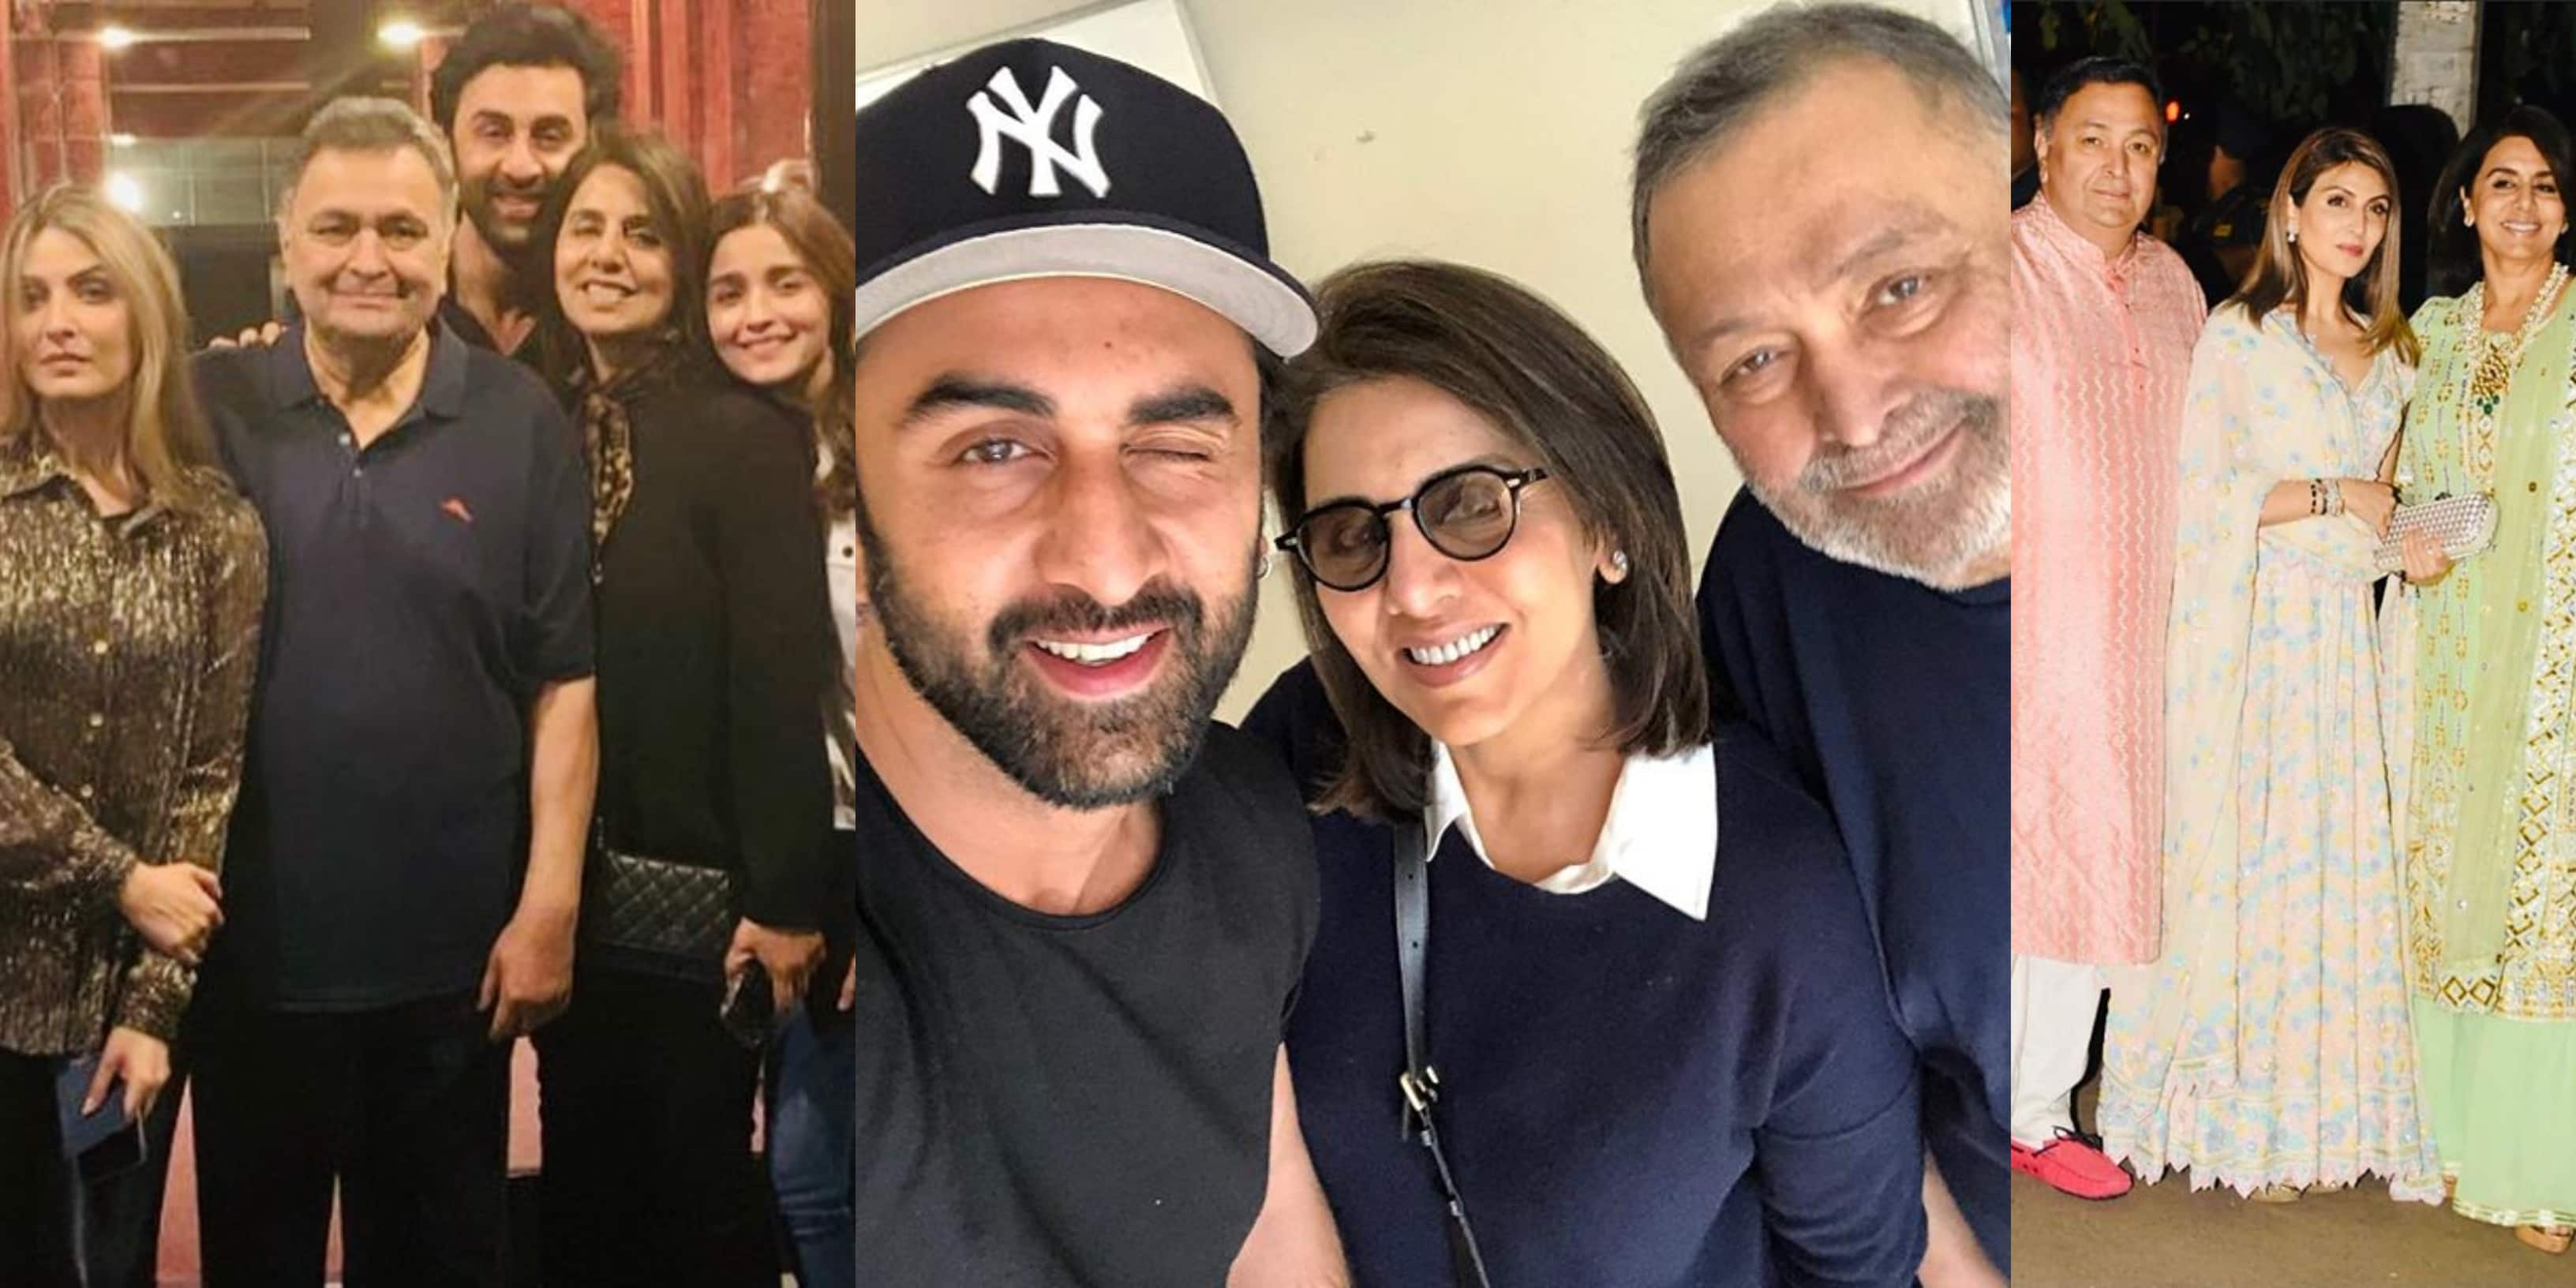 R.I.P Rishi Kapoor: Here Are Some Of His Pictures With Wife Neetu, Son Ranbir And Family After His Cancer Diagnosis